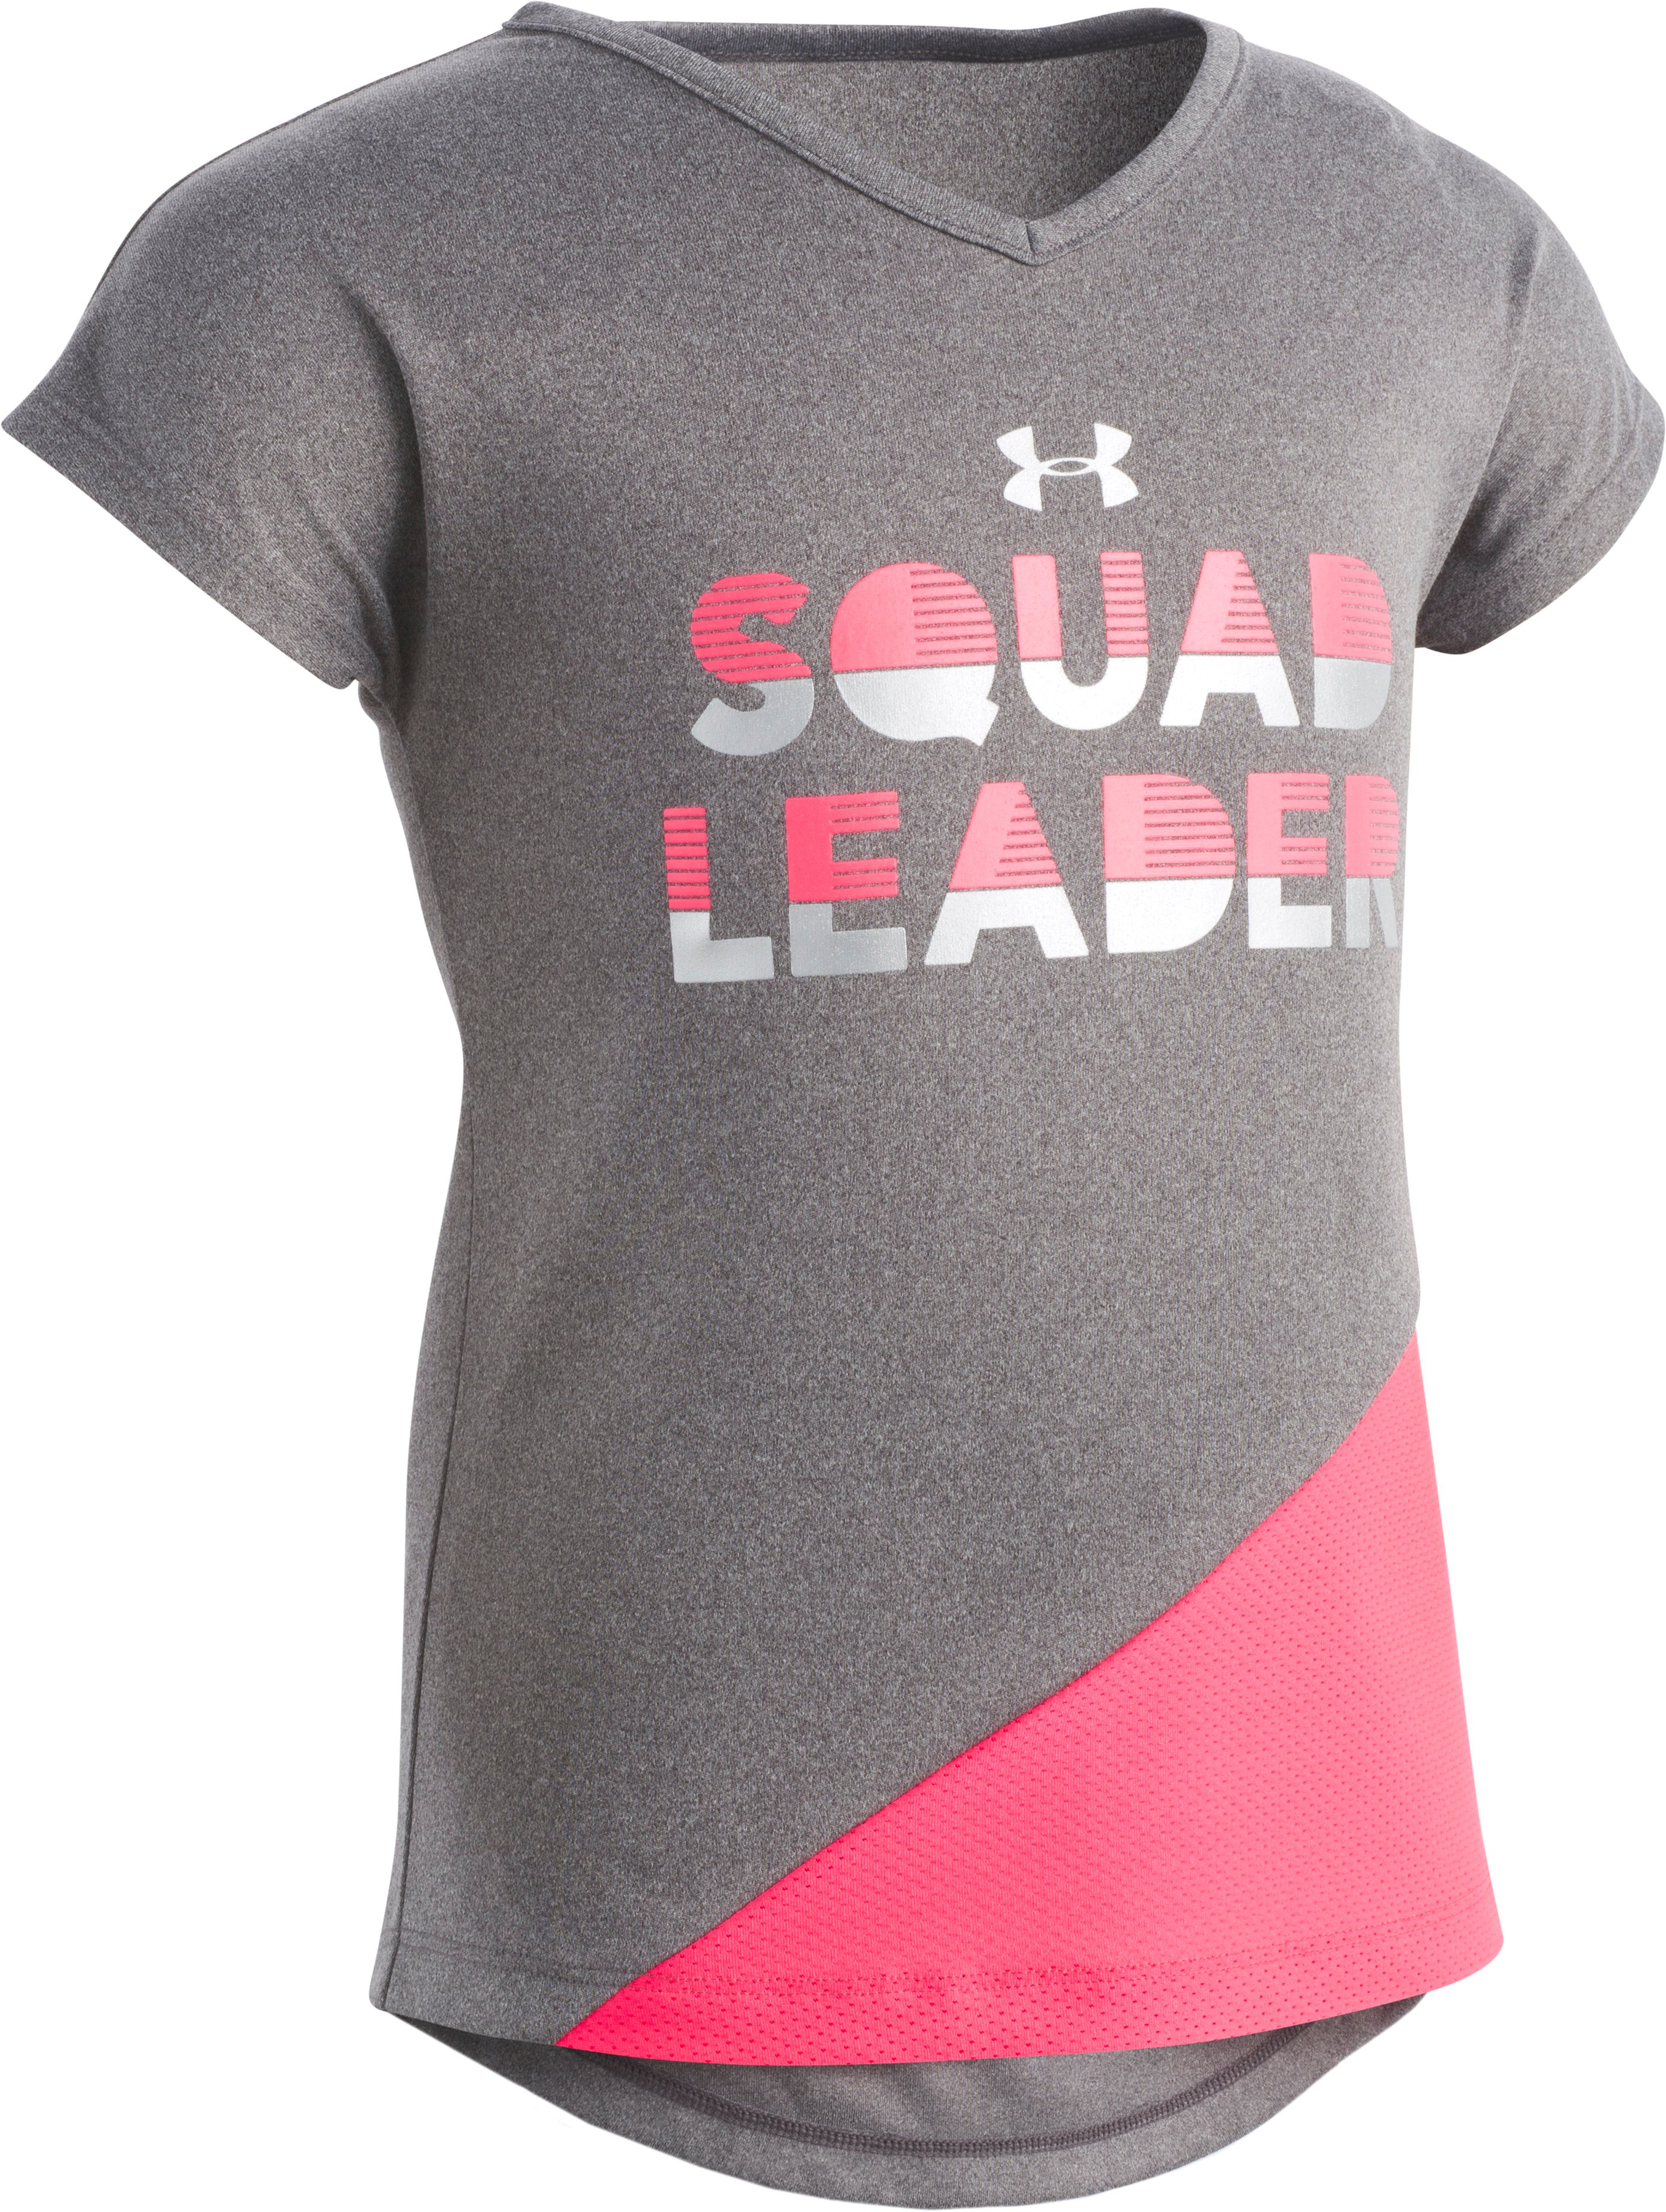 Girls' Toddler UA Squad Leader T-Shirt , Charcoal Medium Heather, Laydown